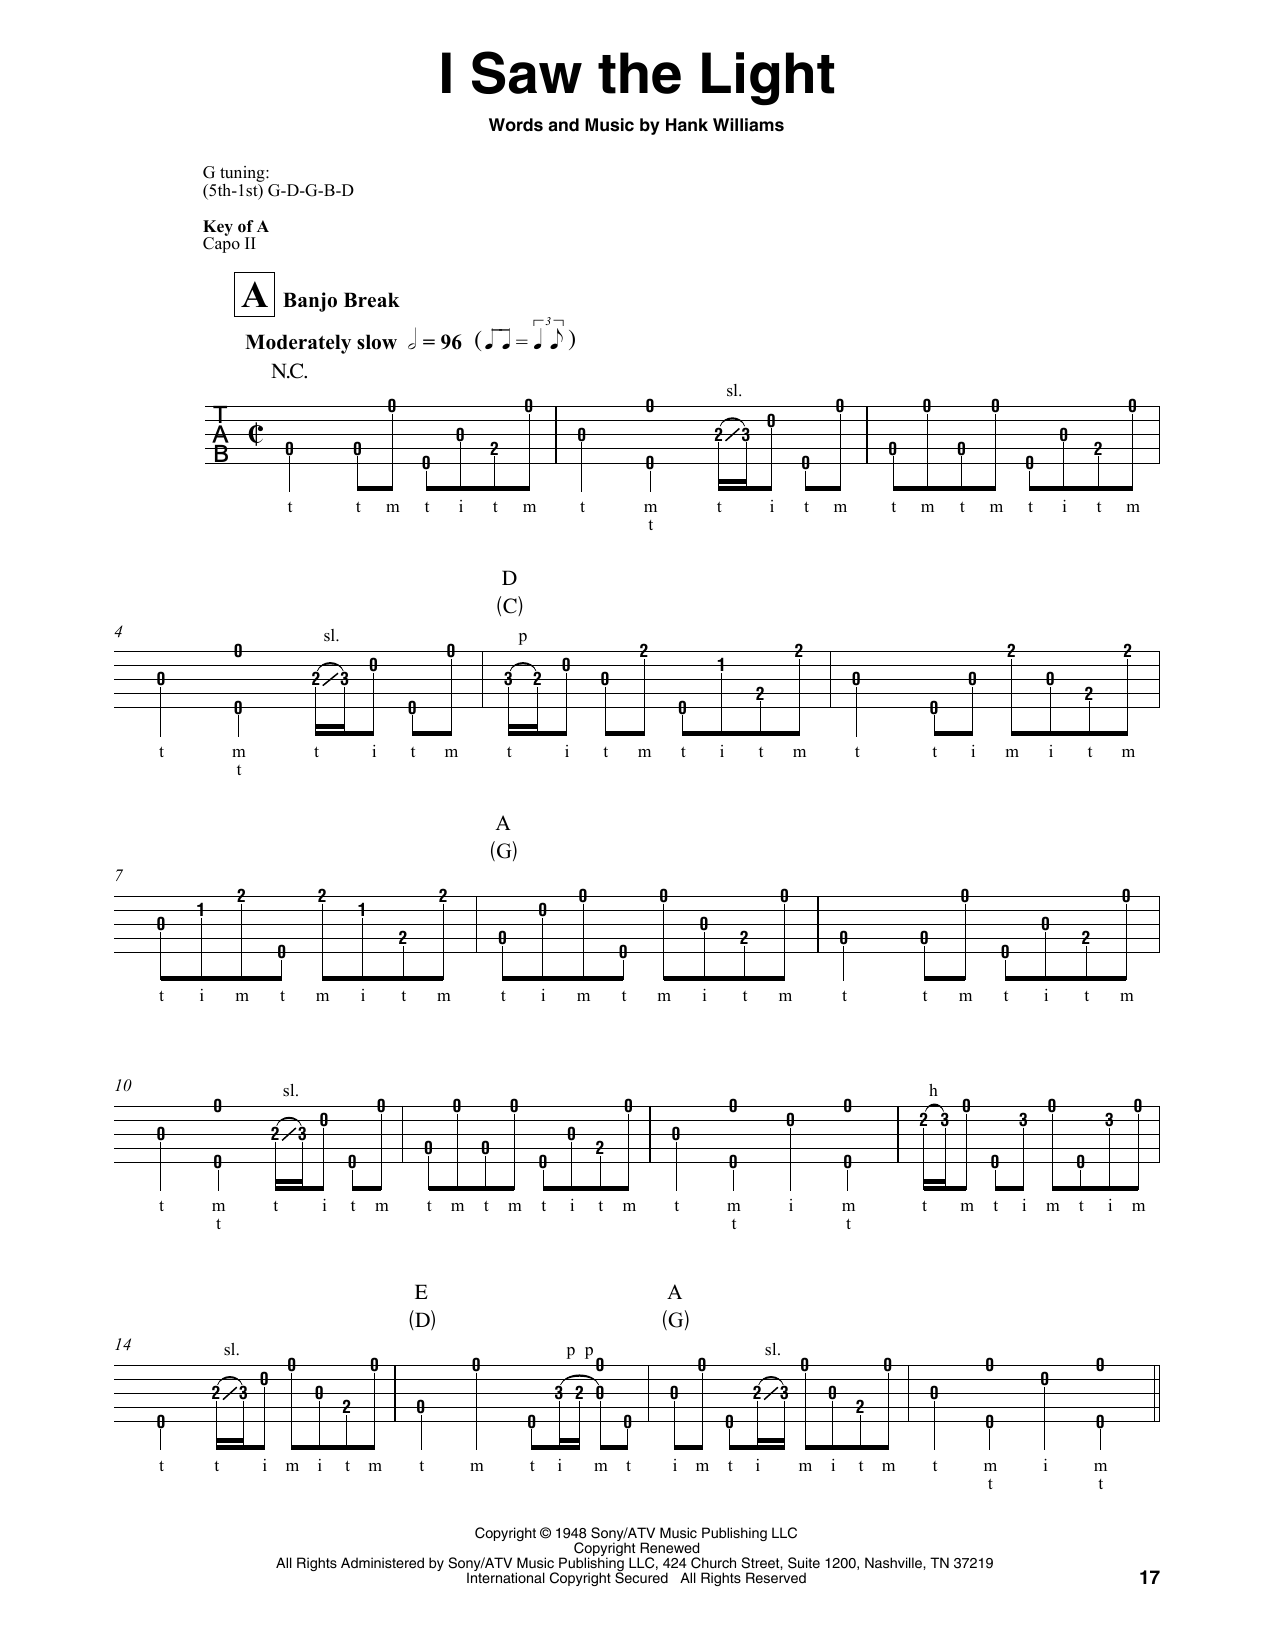 Hank Williams I Saw The Light Sheet Music Notes Chords